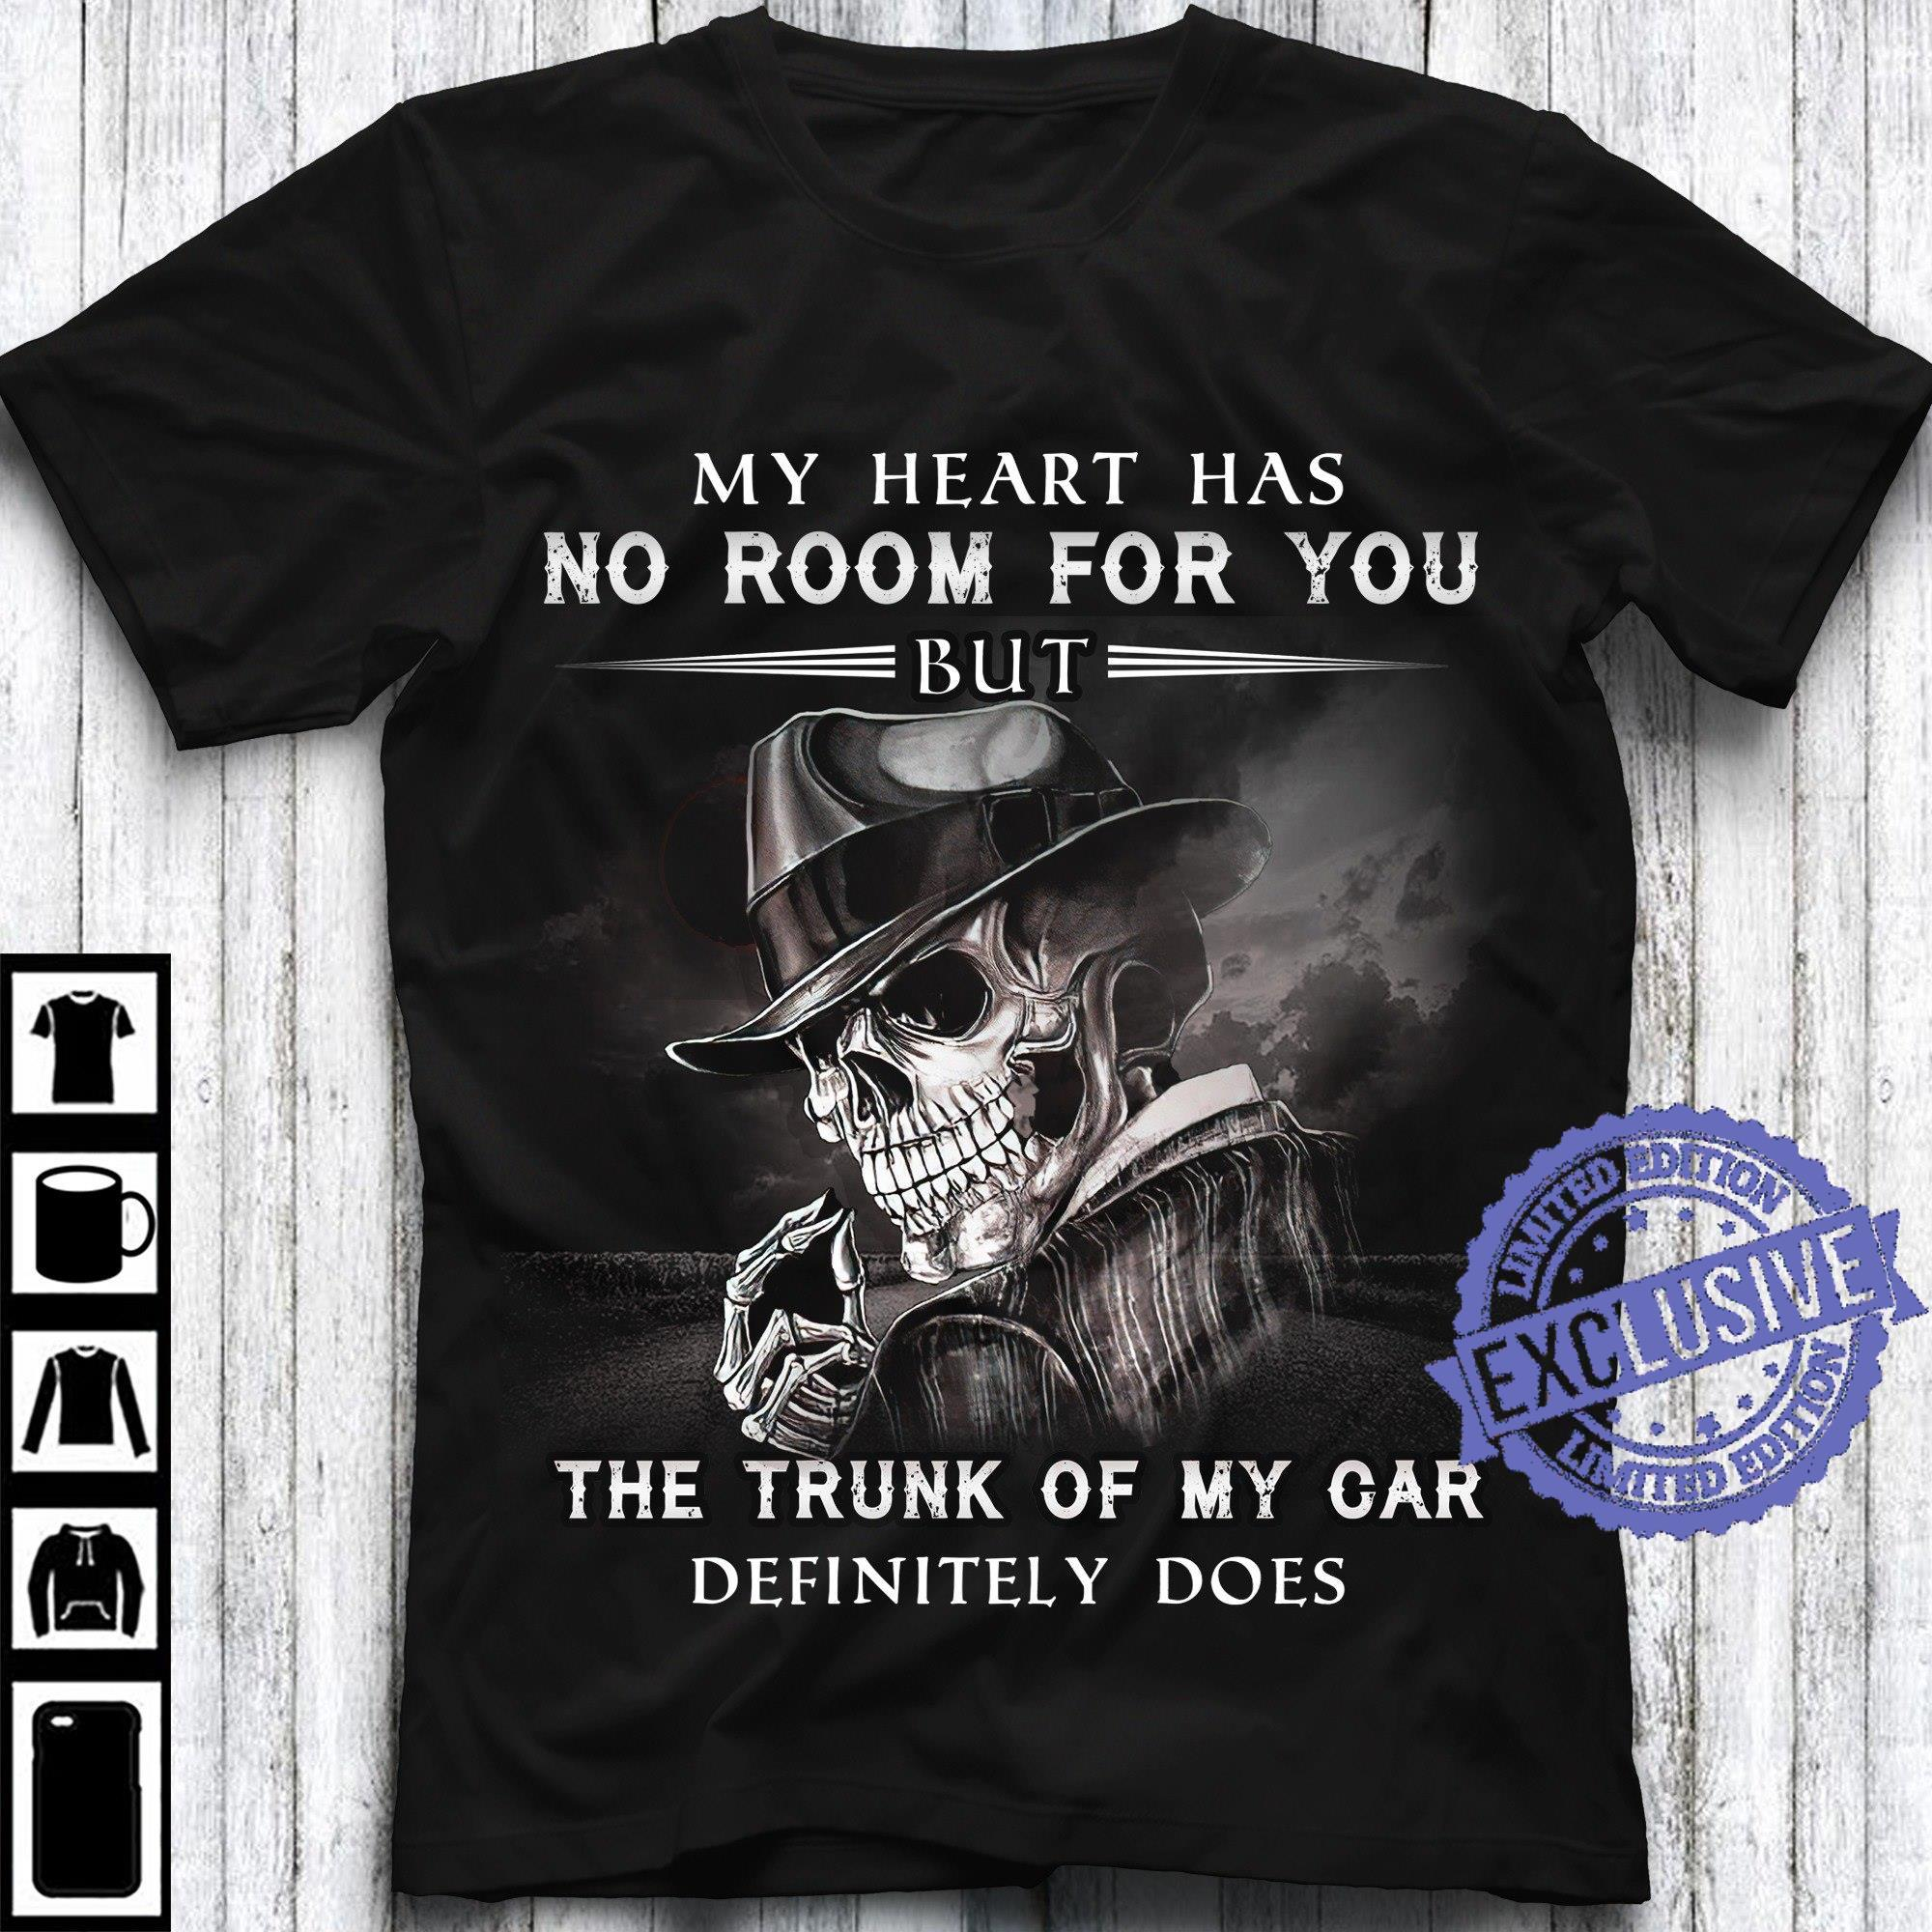 My heart has no room for you the trunk of my car definitely does shirt